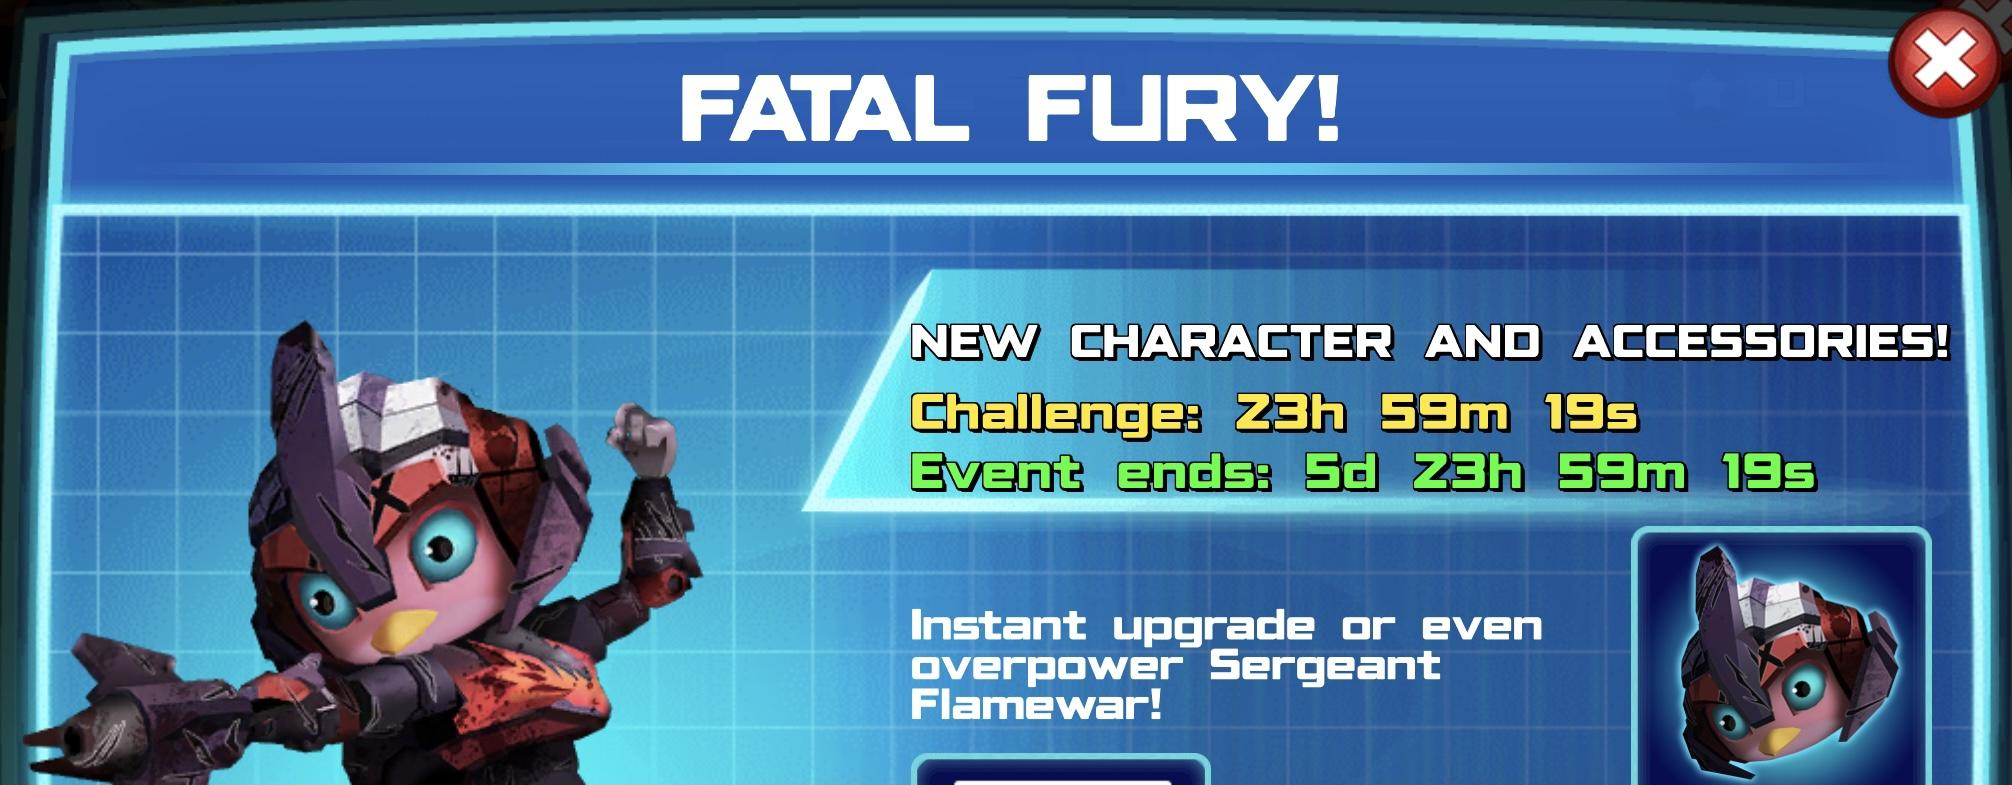 The event banner for Fatal Fury